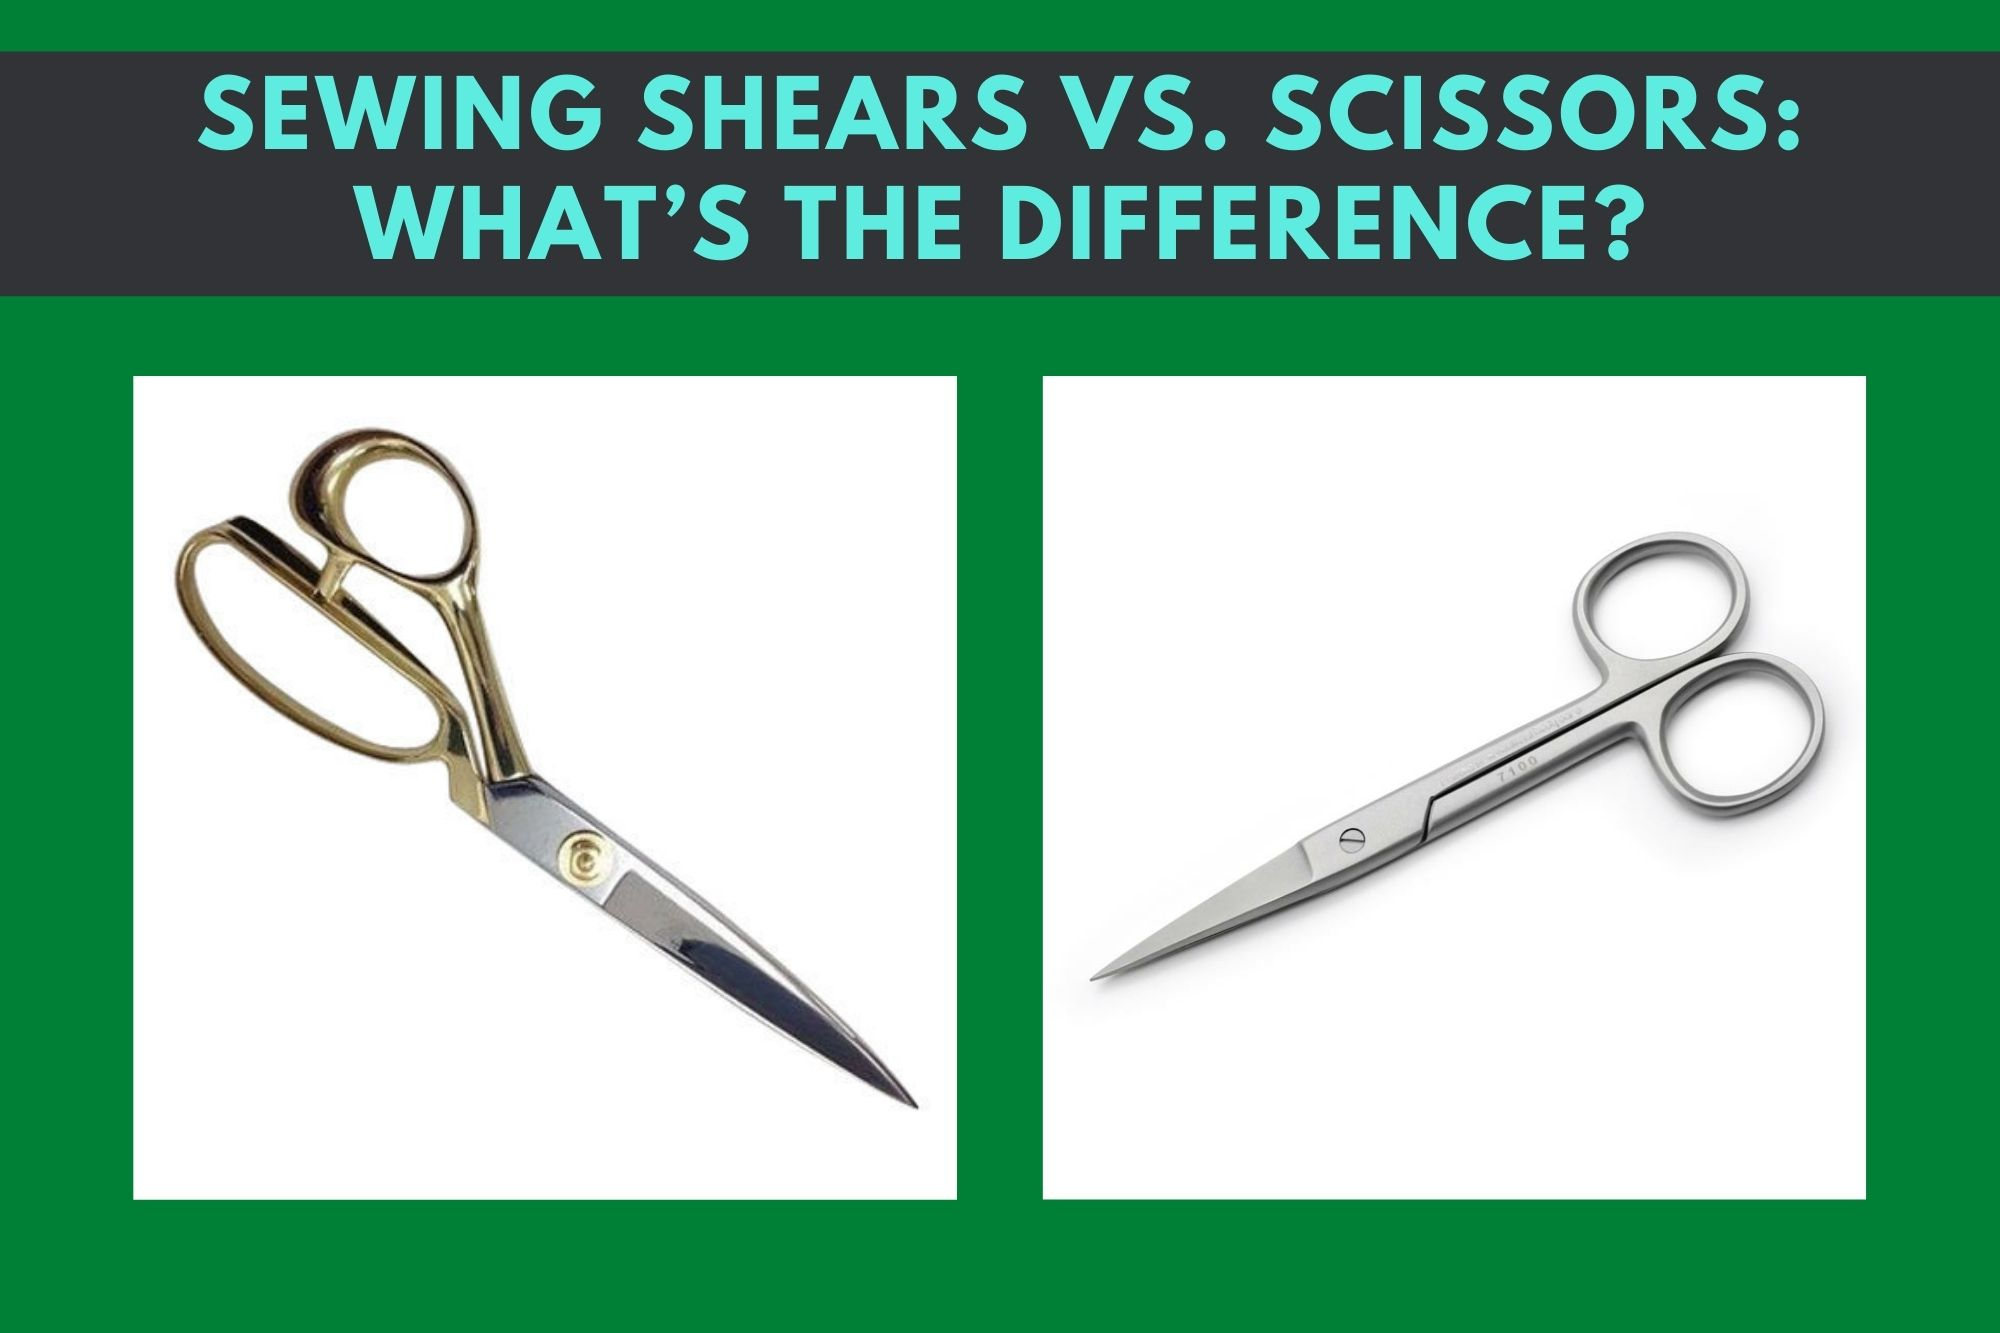 Sewing Shears Vs. Scissors What Is A Scissor? Pros And Cons Of Using Scissors What Is A Sewing Shear? Pros And Cons Of Using Sewing Shears What Is The Difference Between The Structure Of Sewing Shears And Scissors? What Is The Difference Between The Sizes of Sewing Shears And Scissors? What Happens If You Use Sewing Shears In Household Use?